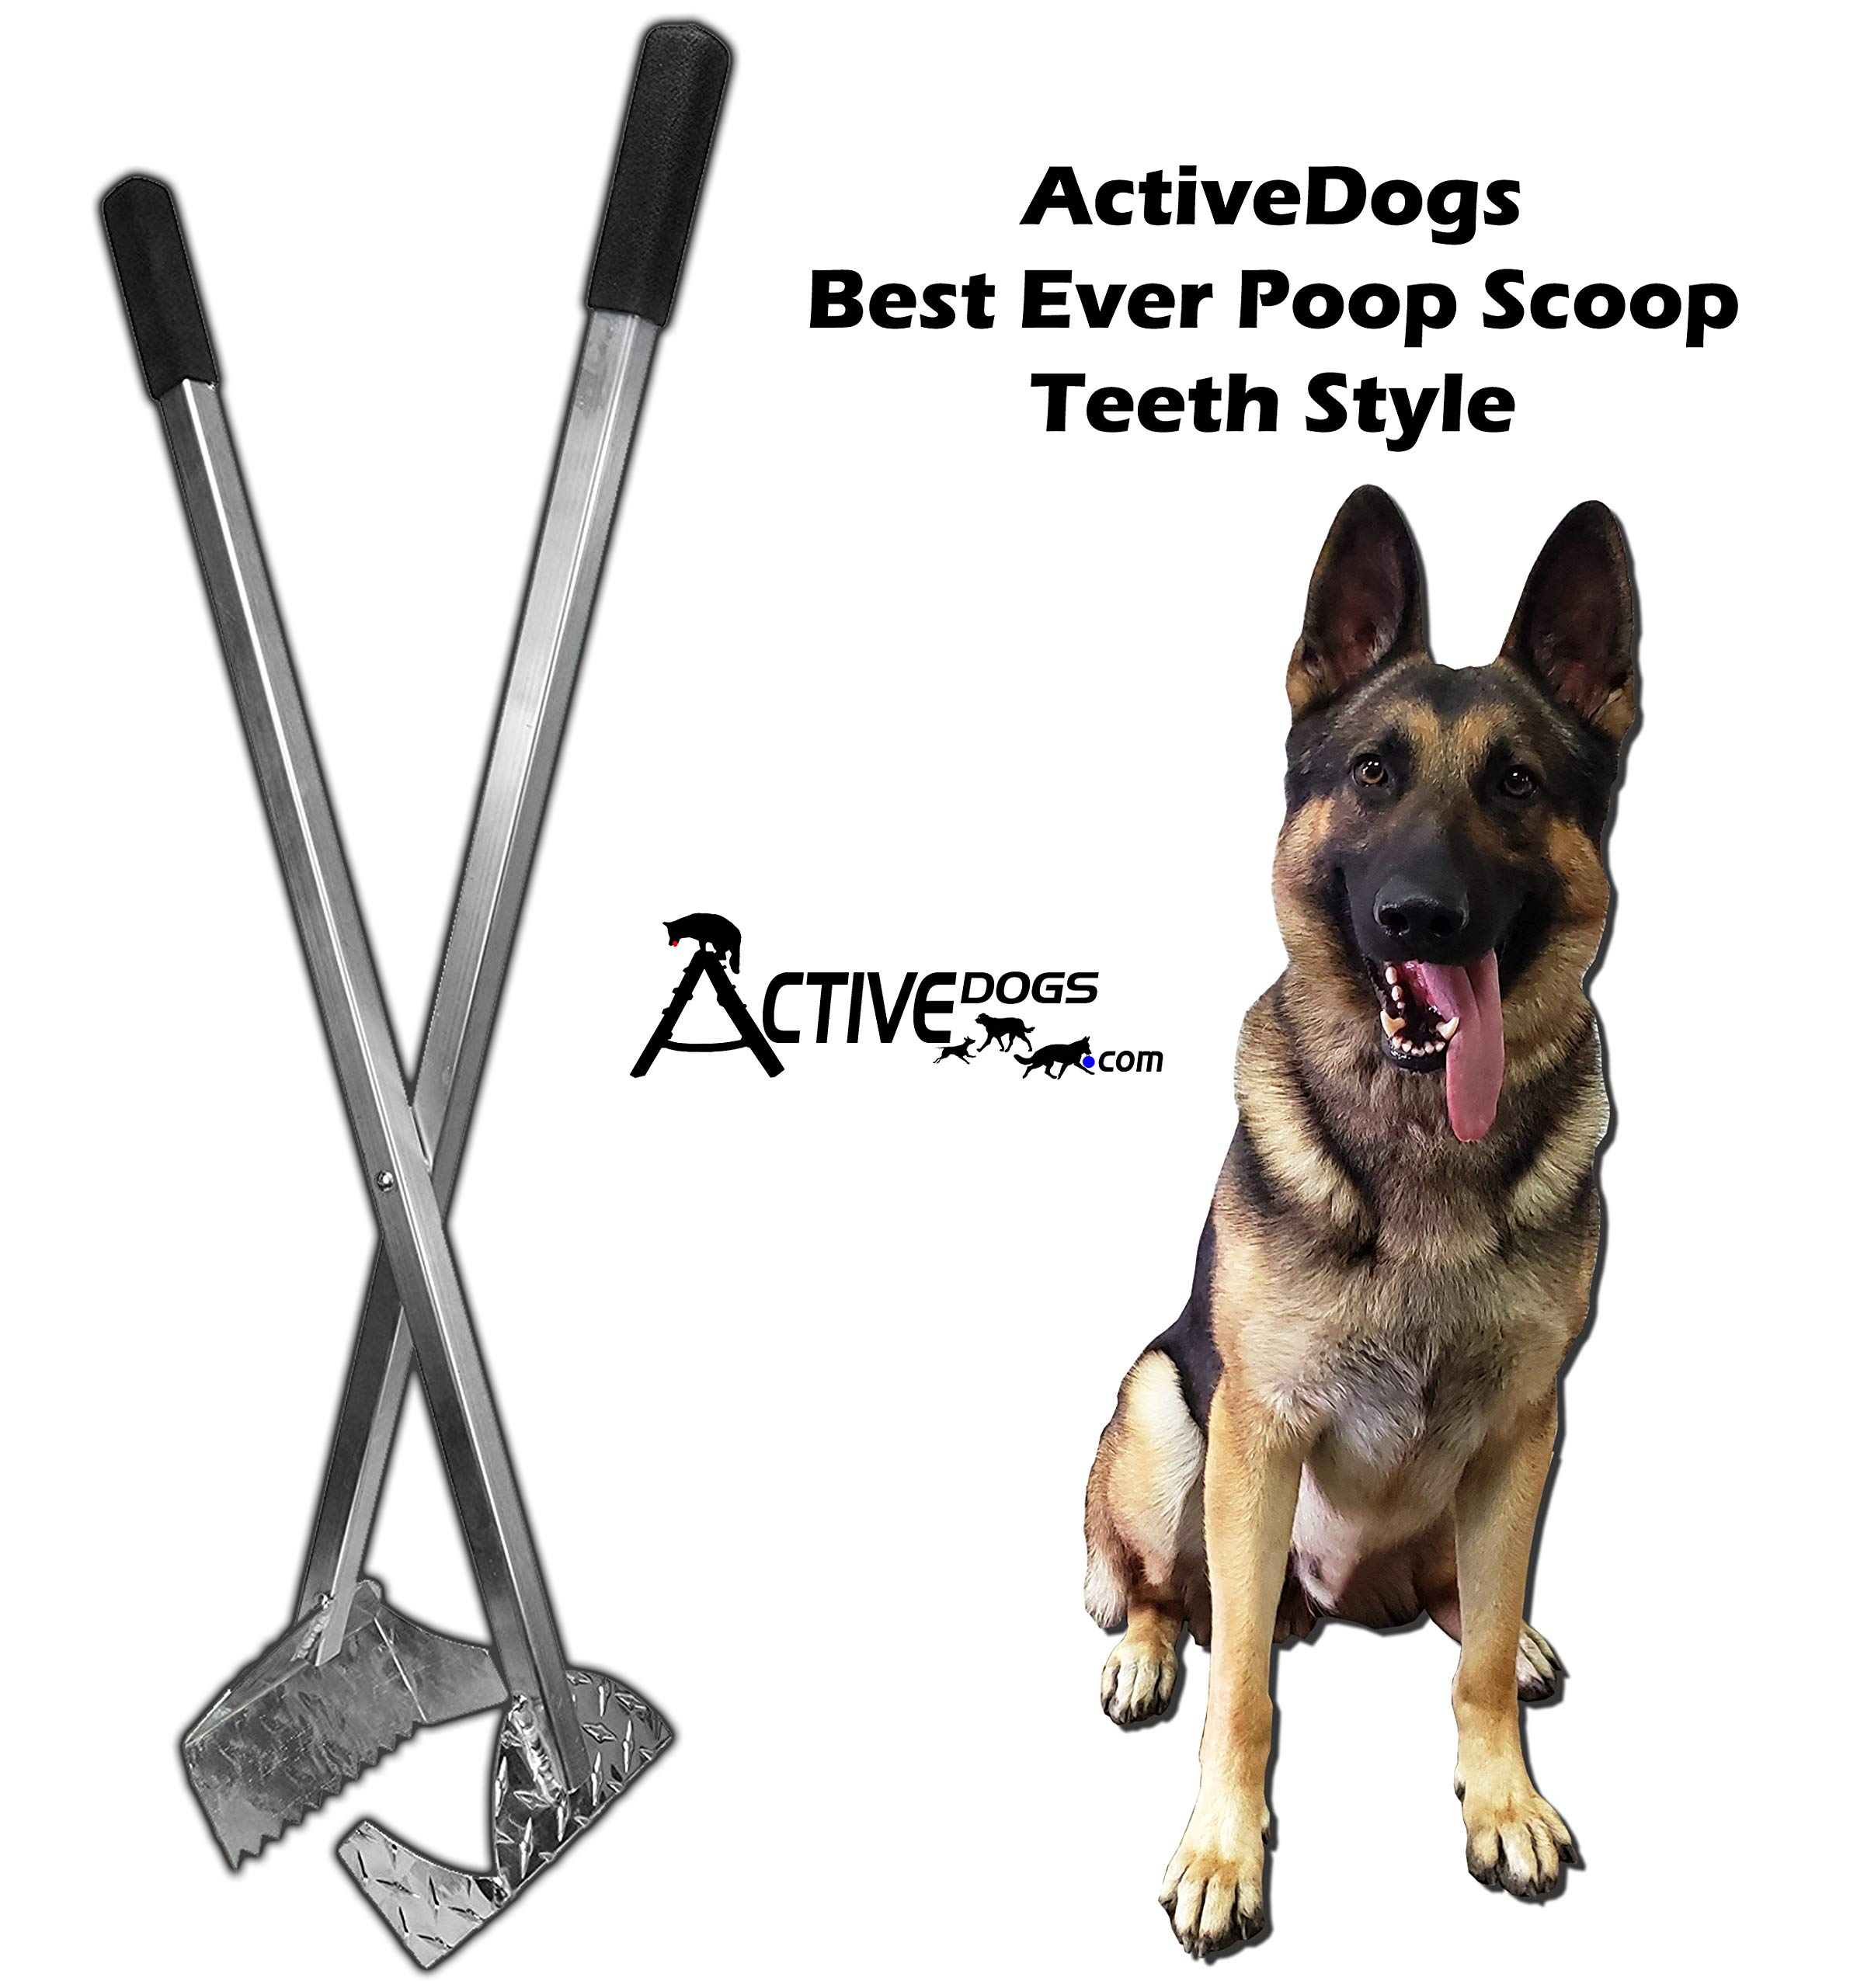 Activedogs Best Ever Dog Poop Scooper - All Aluminum Design Heavy Duty & Durable Waste Removal Shovel Scoop Tool - Built to Last - Made in The USA (Teeth Style) by Activedogs